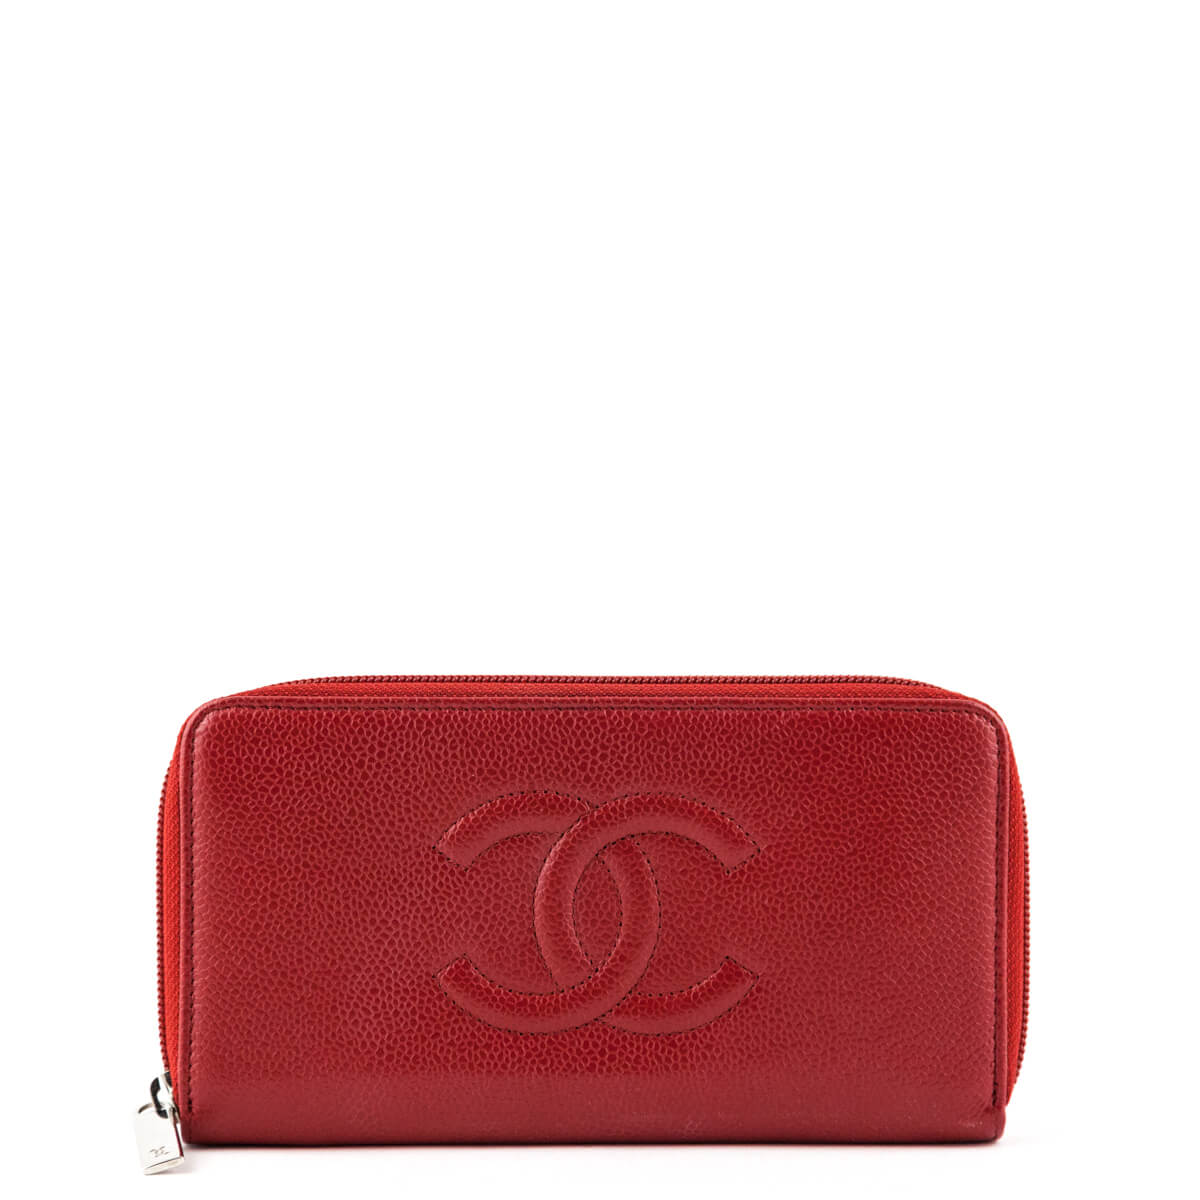 c3dabe47b47484 Chanel Red Caviar CC Timeless Large Gusset Zip Around Wallet - LOVE that  BAG - Preowned ...